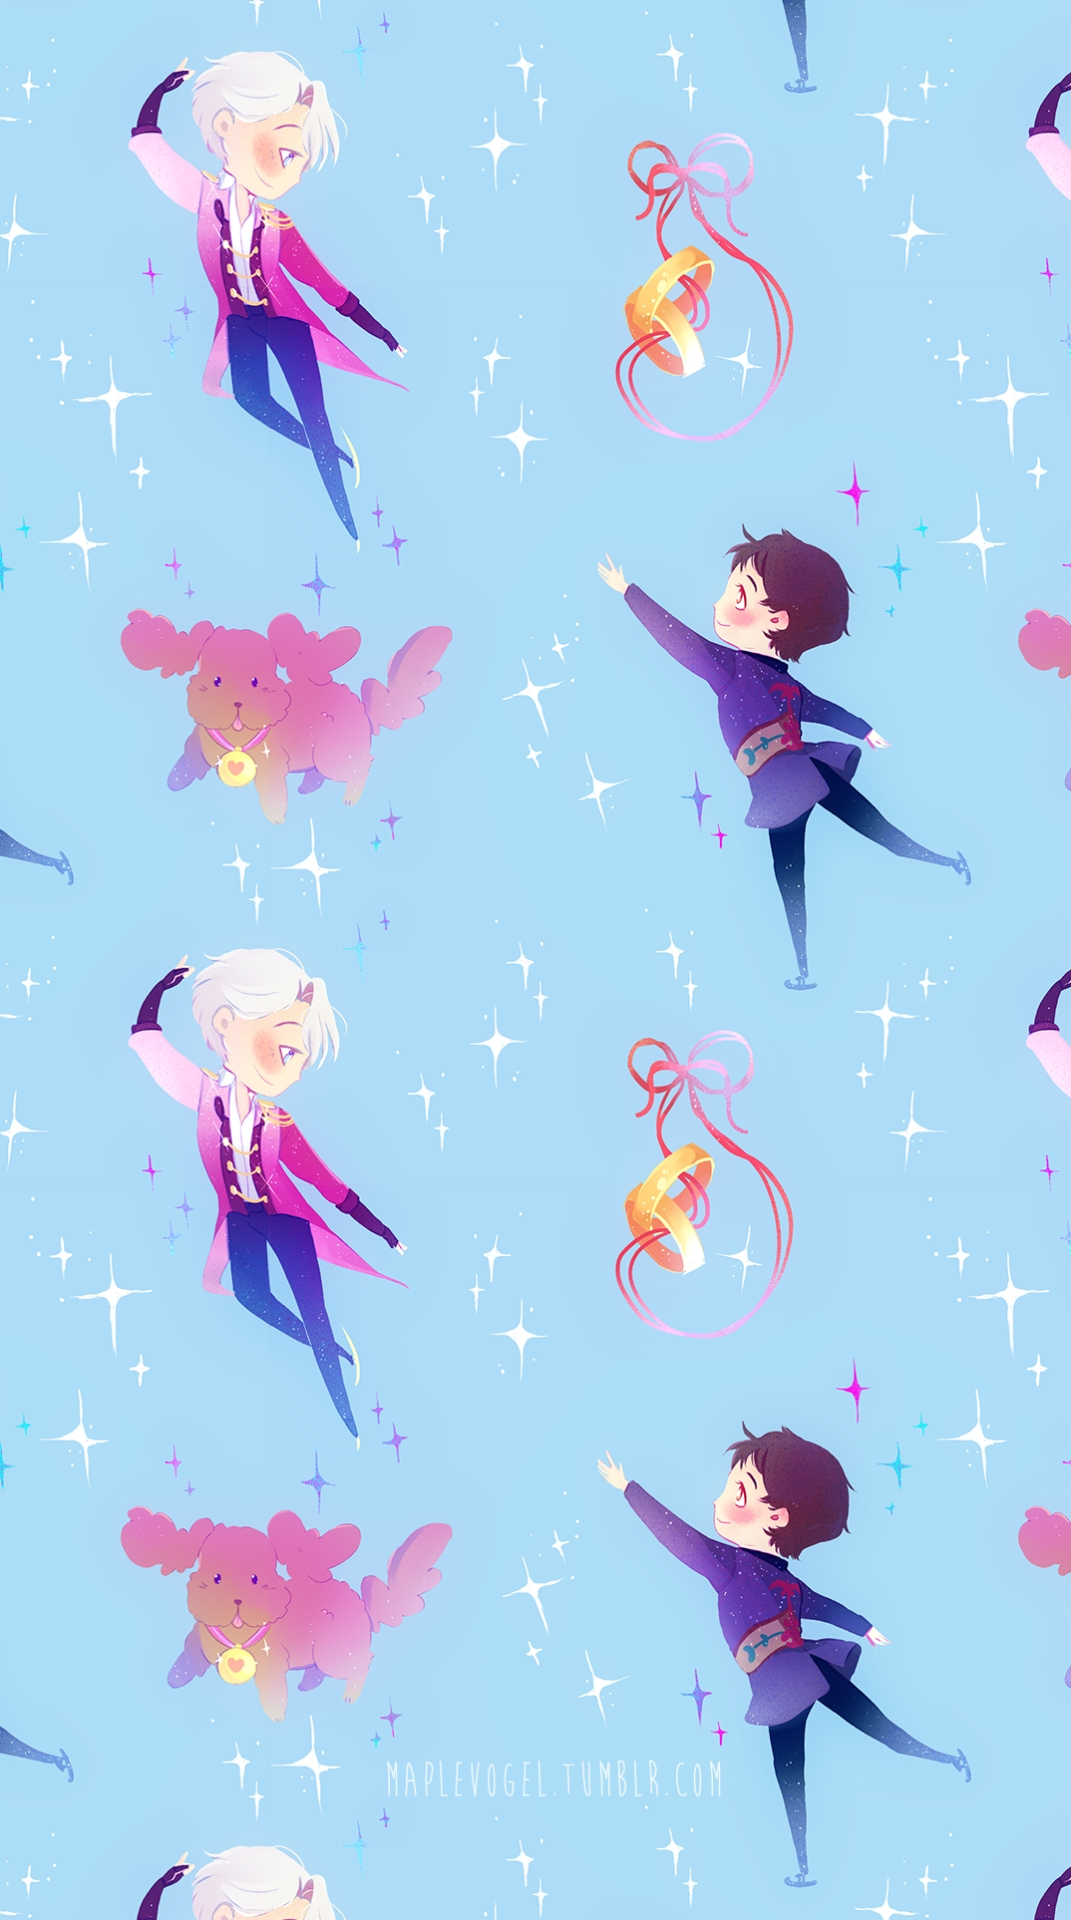 new version of my earlier victuuri patterns after some people asked